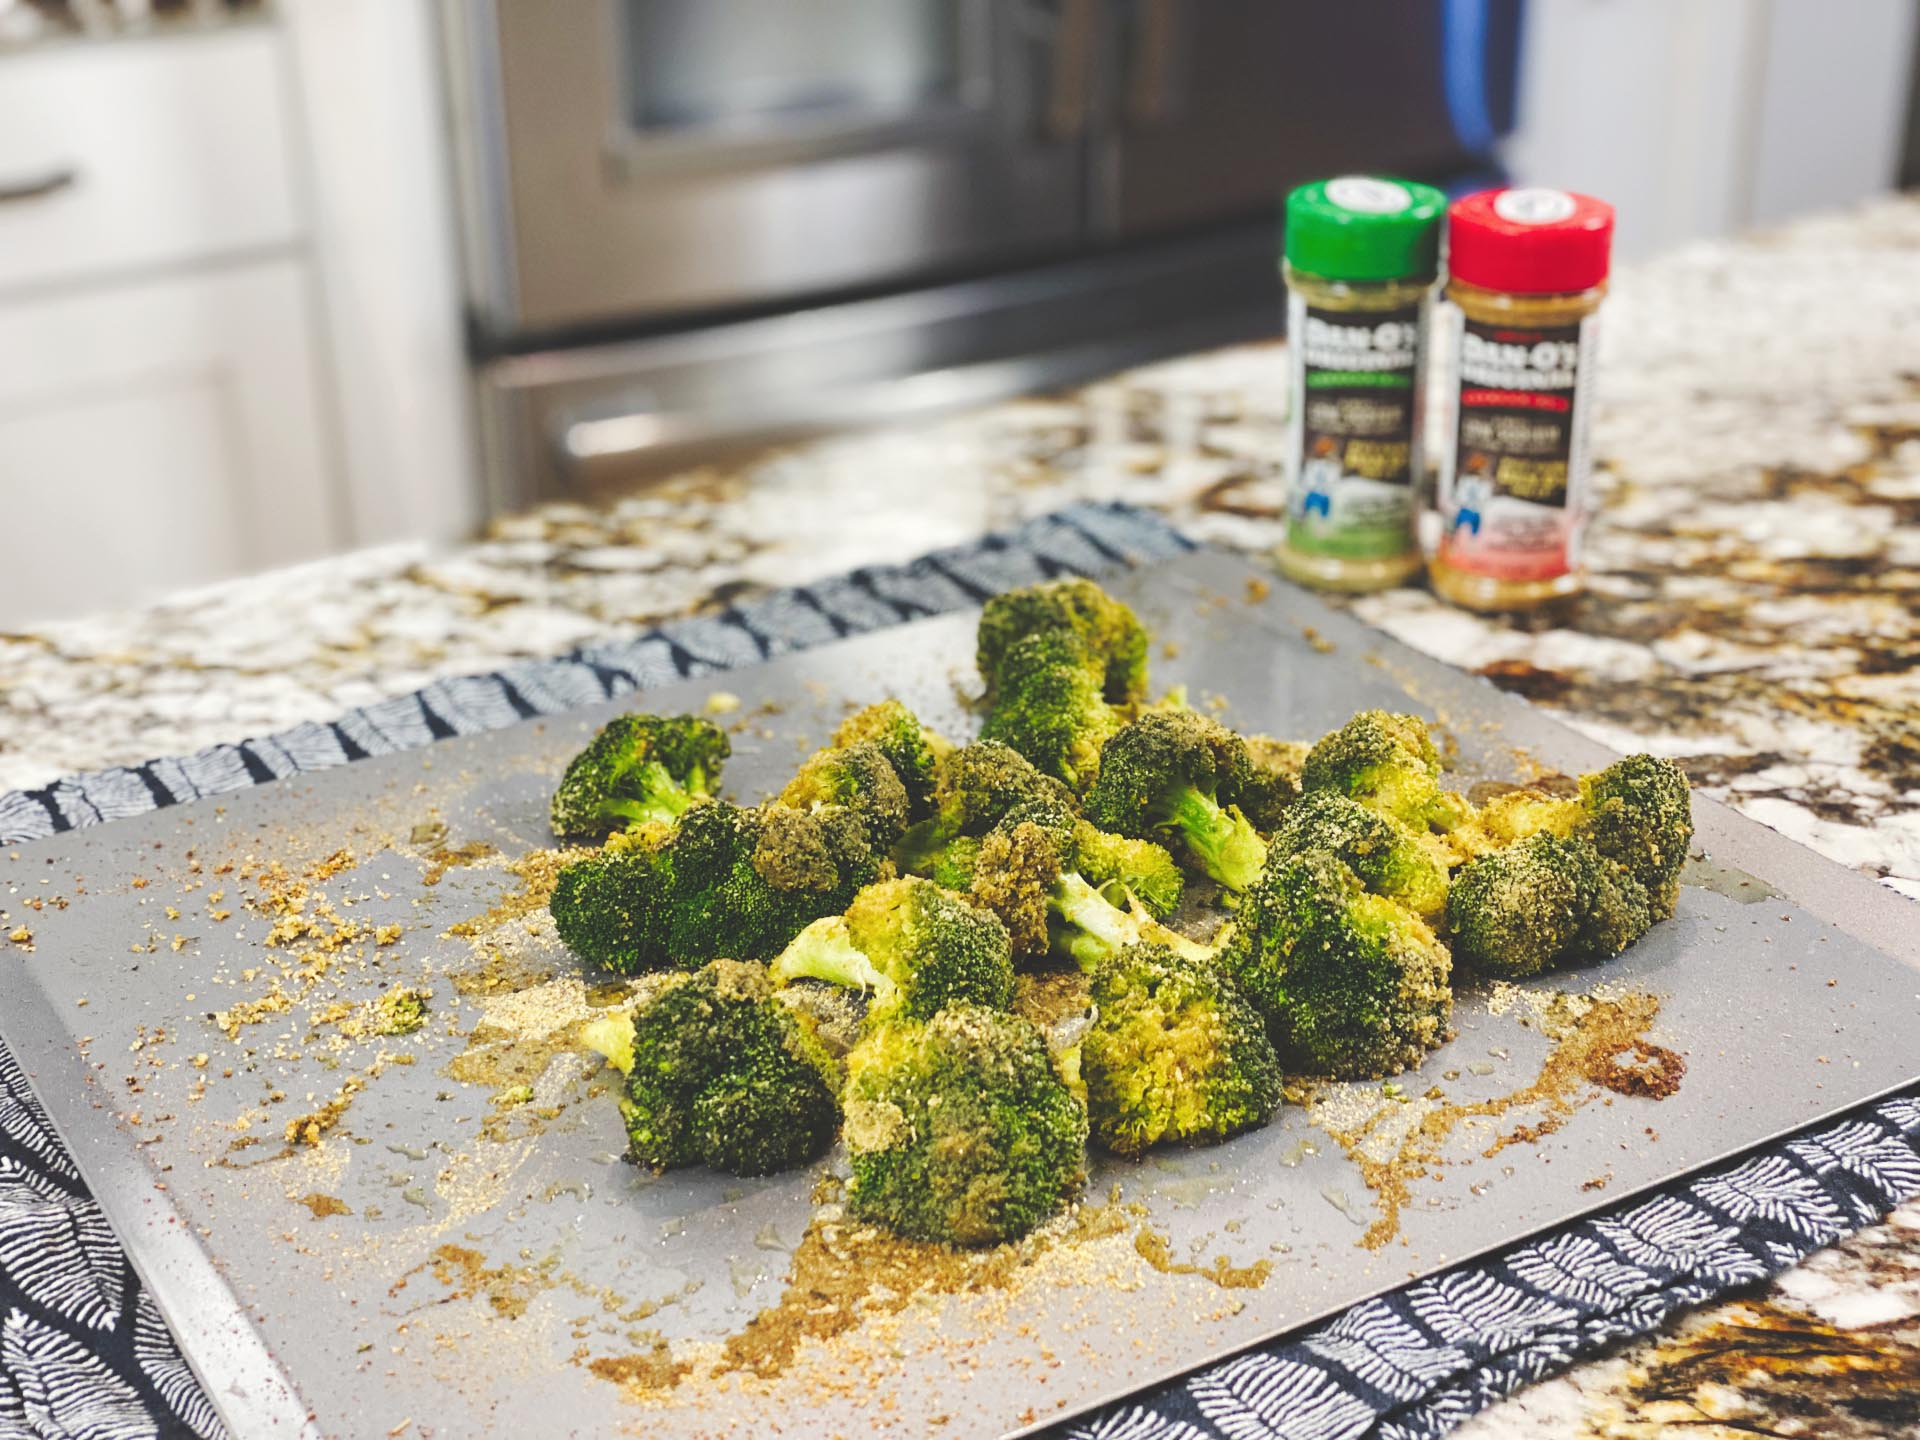 Image of baked broccoli with danos seasoning in the background